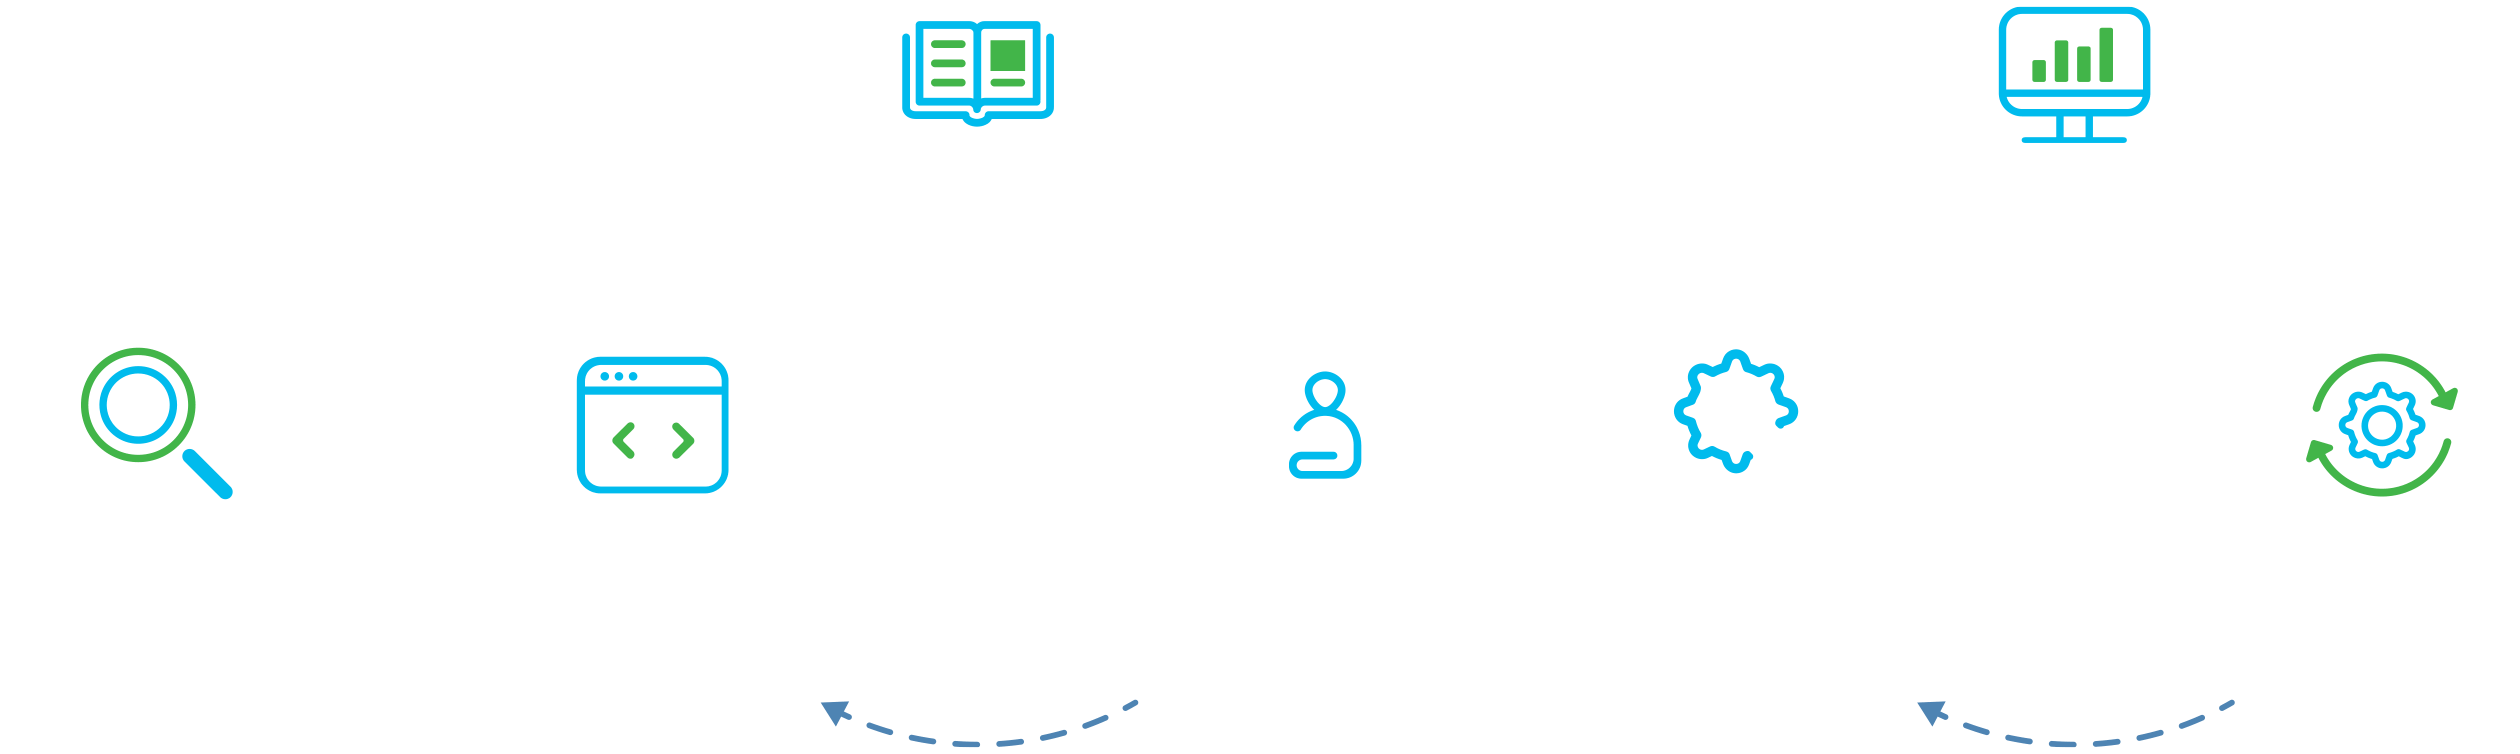 Outcome Based Solution Image